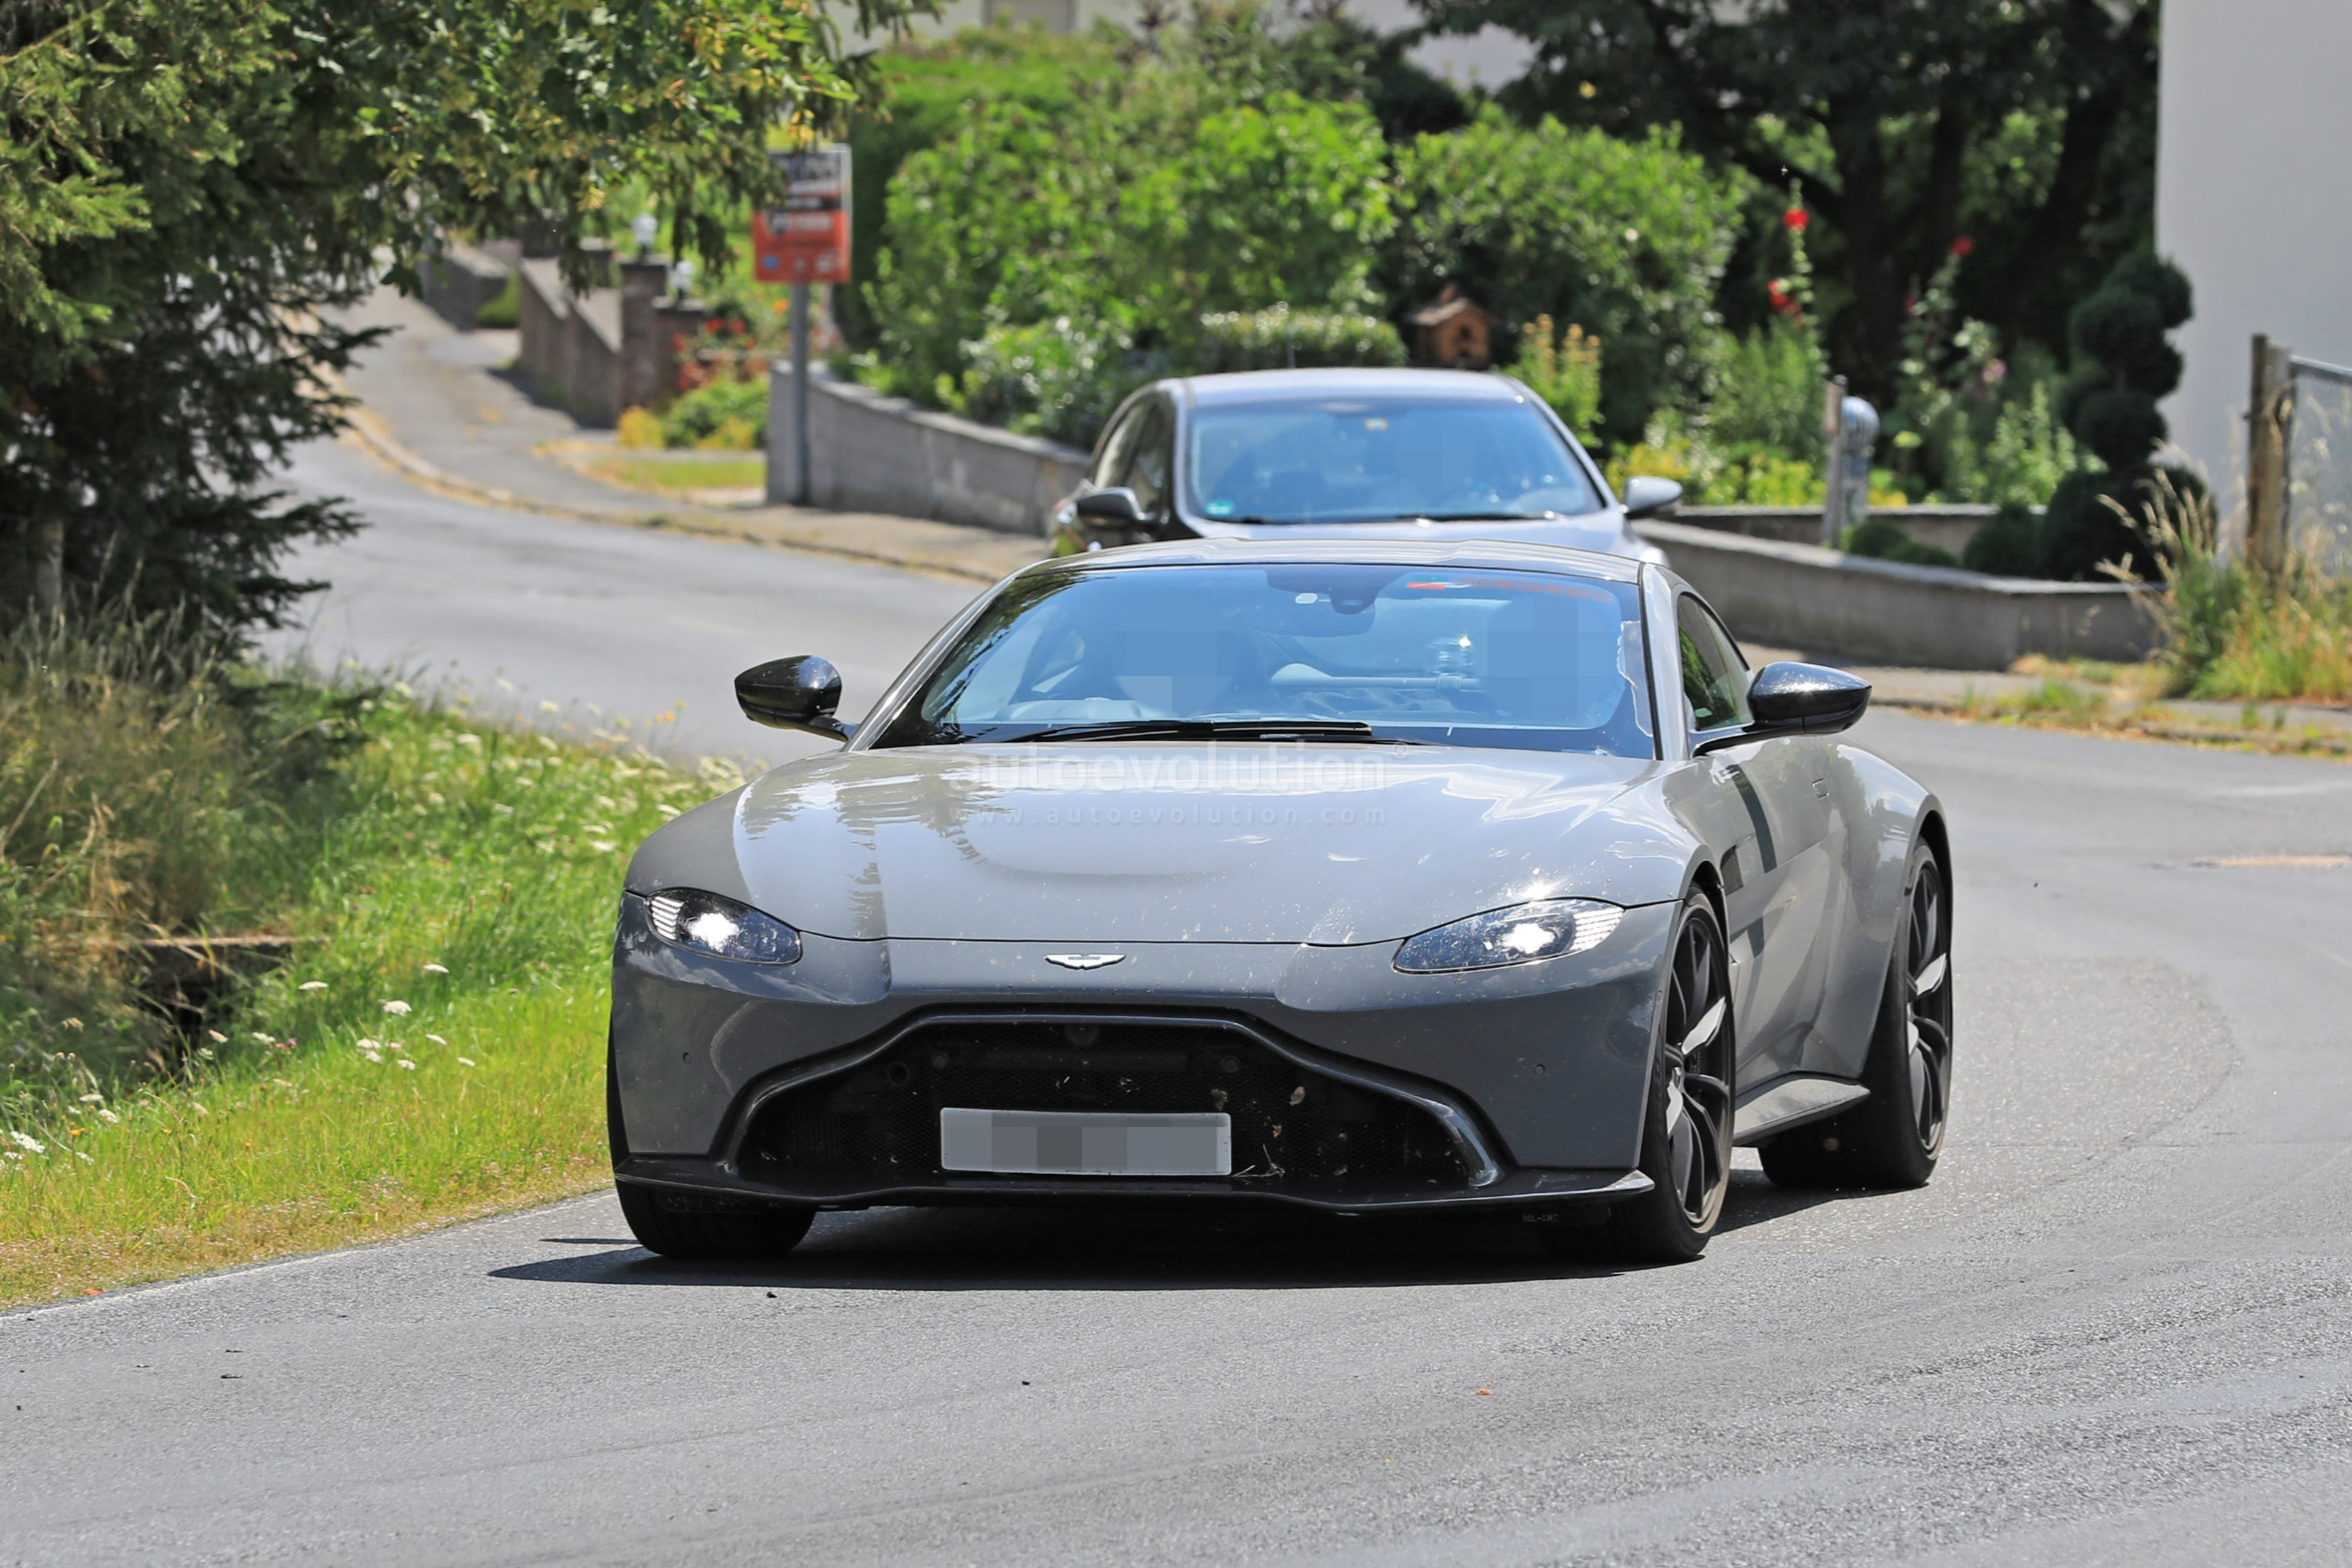 2020 aston martin v8 vantage s test mule spied near the nurburgring autoevolution. Black Bedroom Furniture Sets. Home Design Ideas